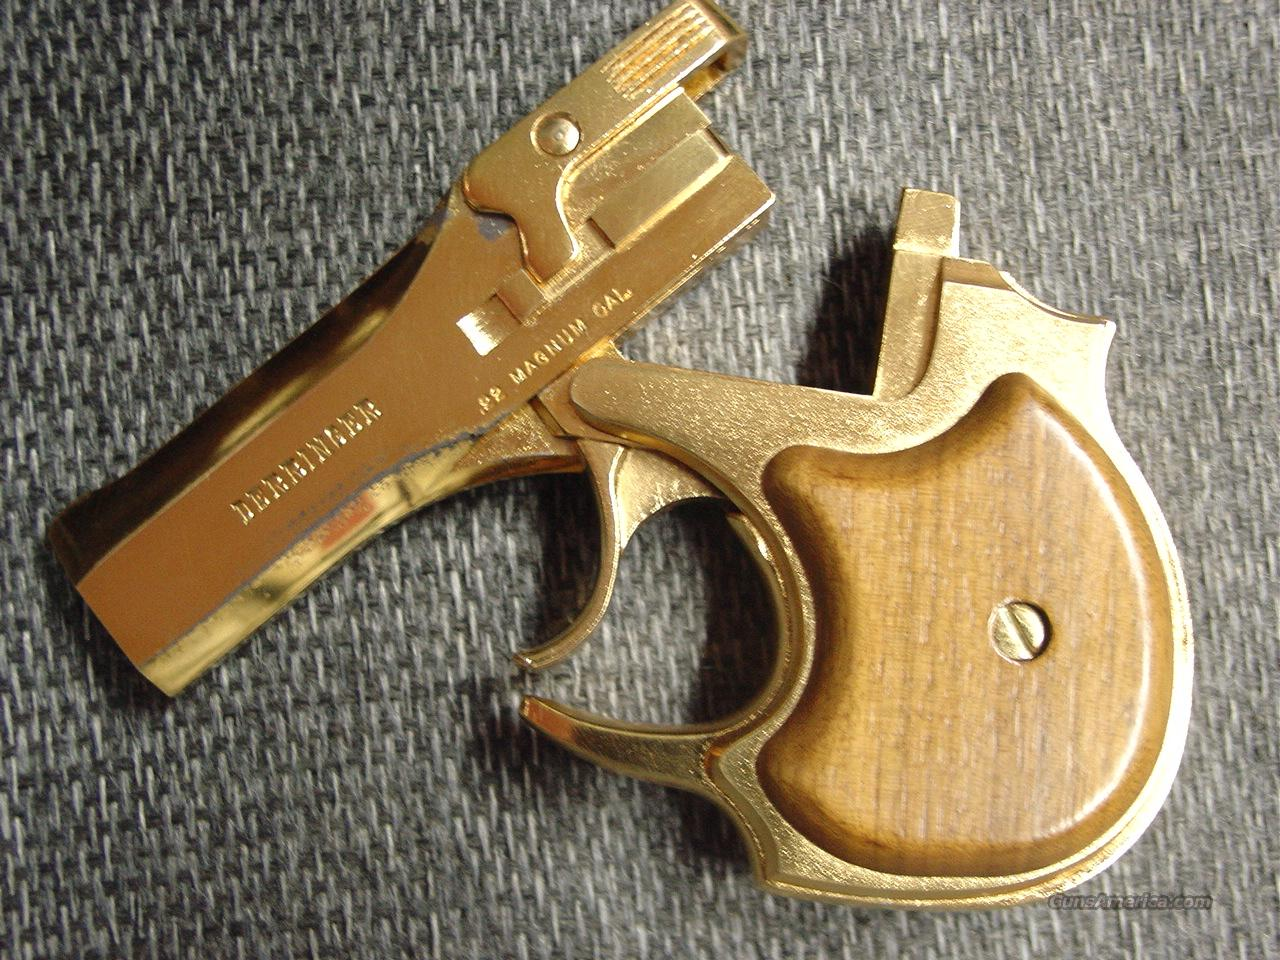 High Standard Gold Presentation Derringer,22 magnum,made,around 1978,box,& papers-unique  Guns > Pistols > High Standard Pistols